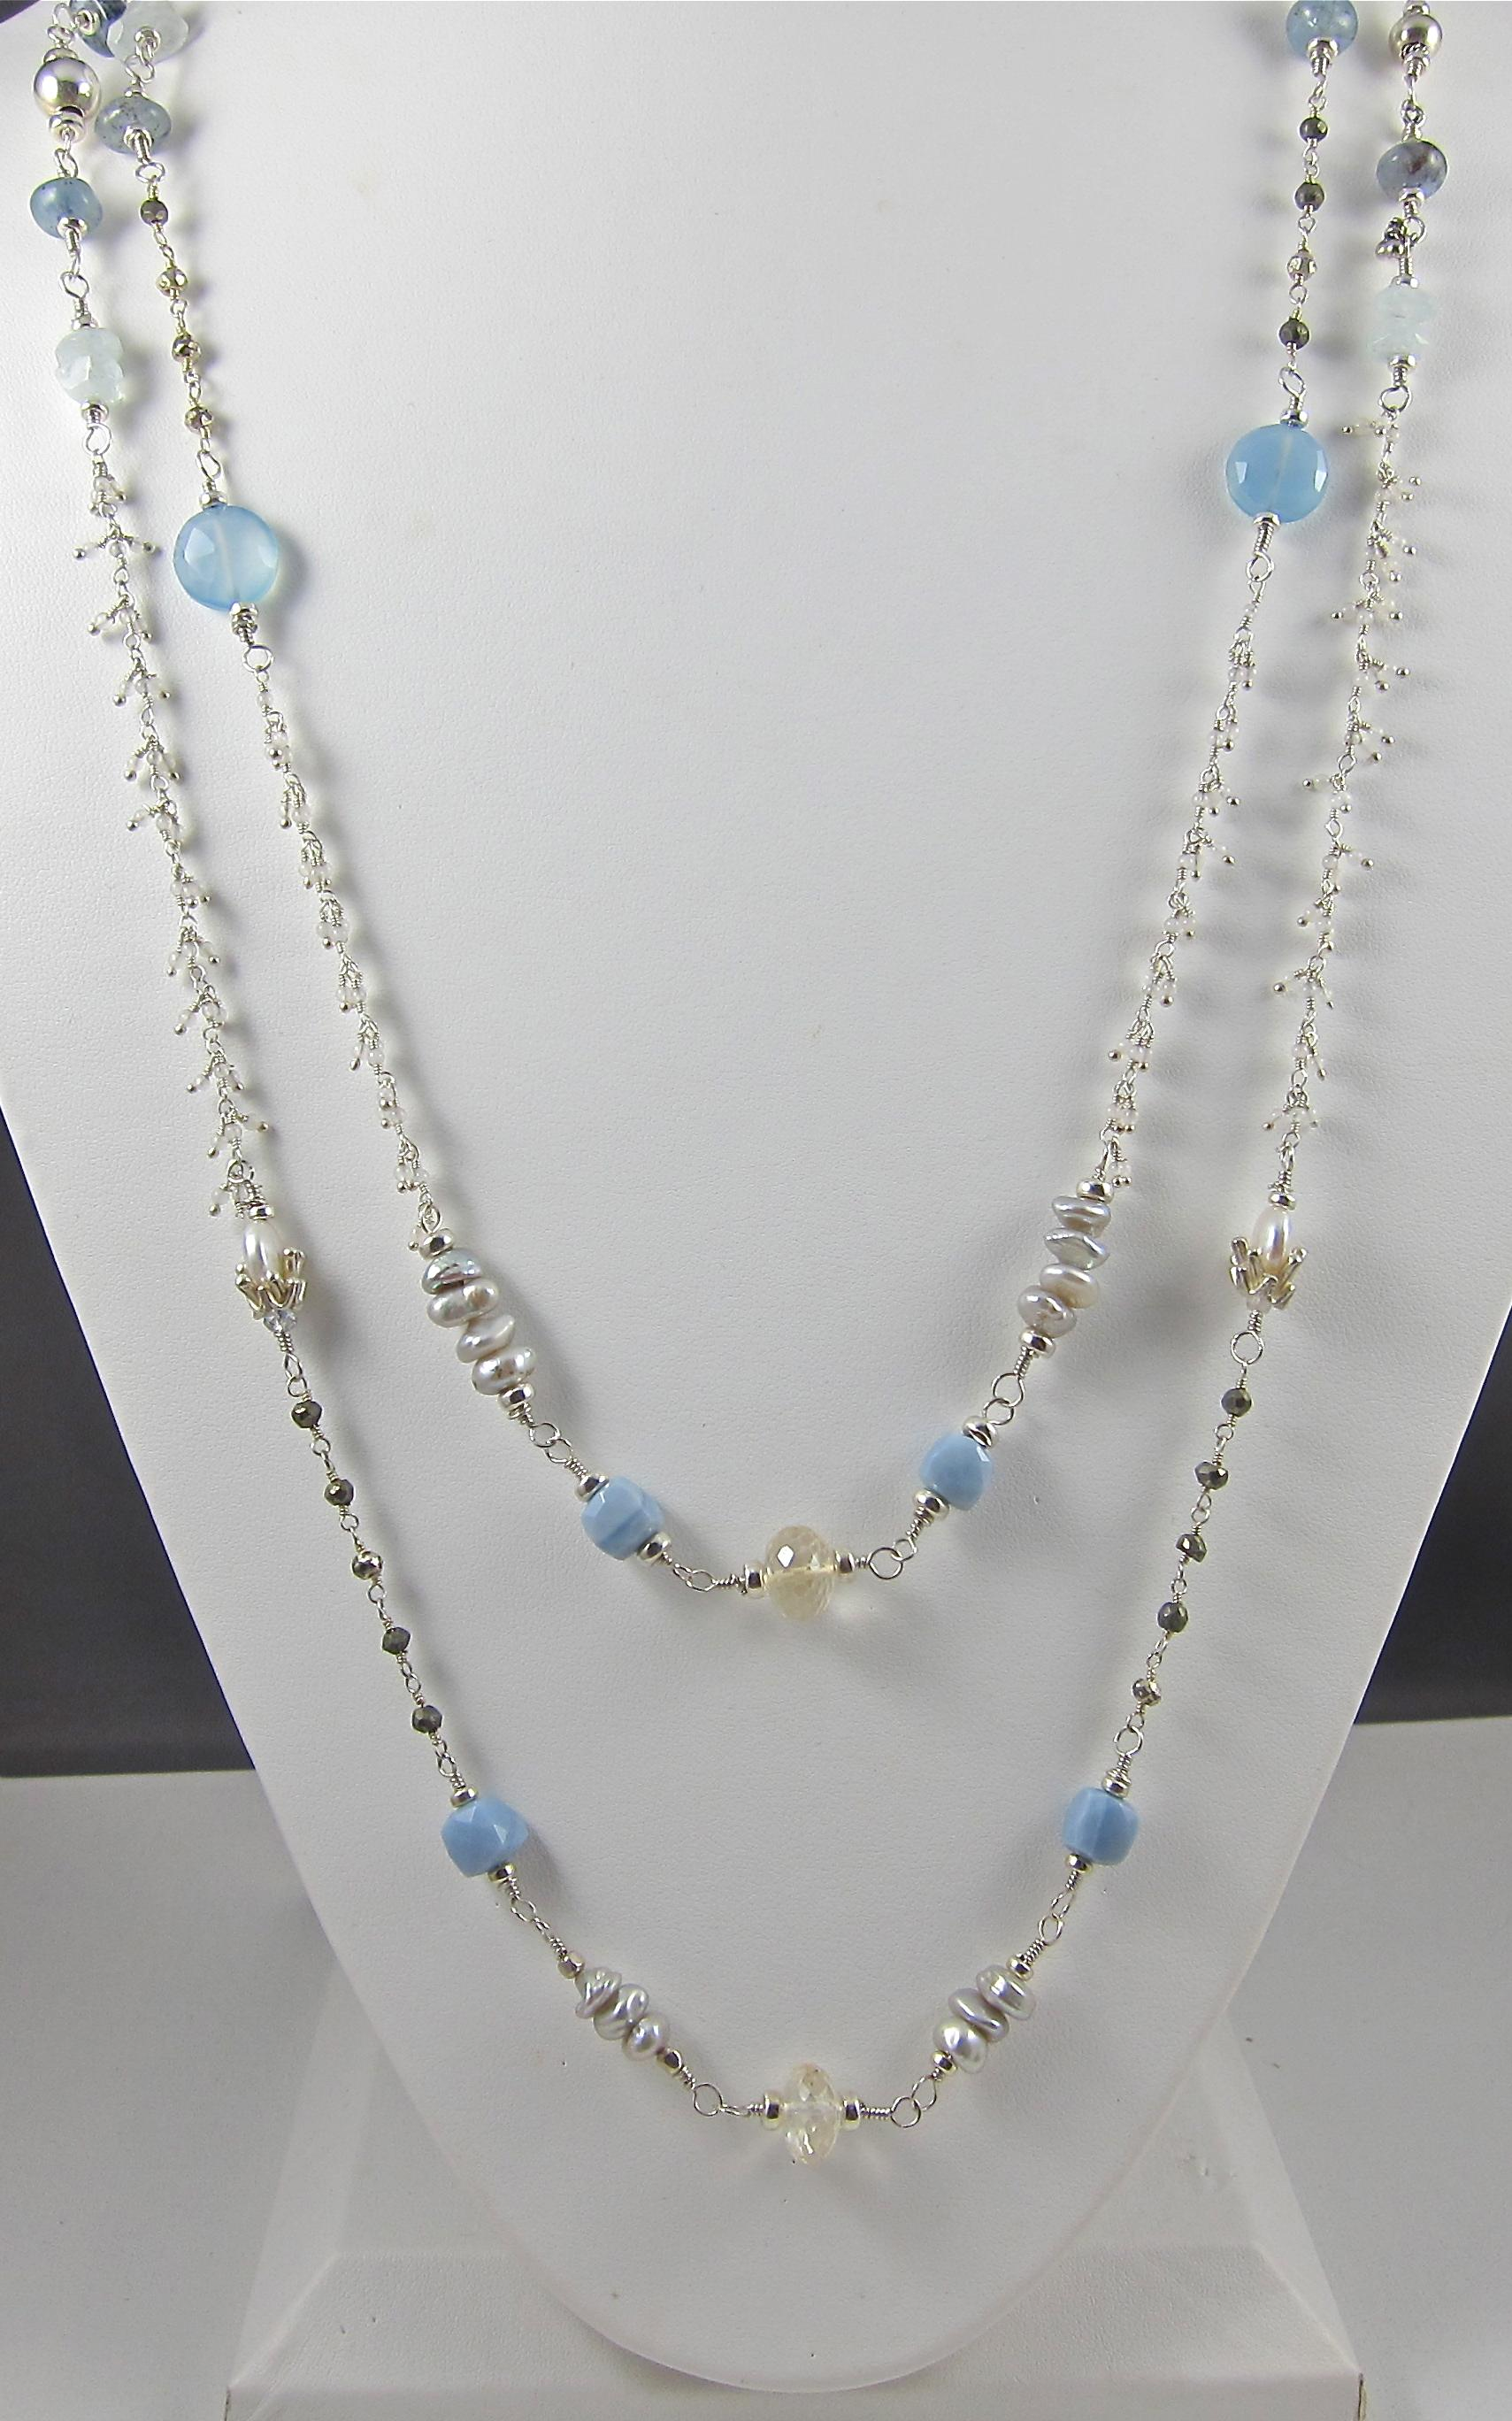 Ippolita necklace from the Rock Candy® Collectionkarat yellow lemkecollier.ga, oval, and tear-shaped stations with blue topaz, Swiss blue topaz, and Quickview Ippolita 18K Gold Rock Candy® Long Station Necklace.